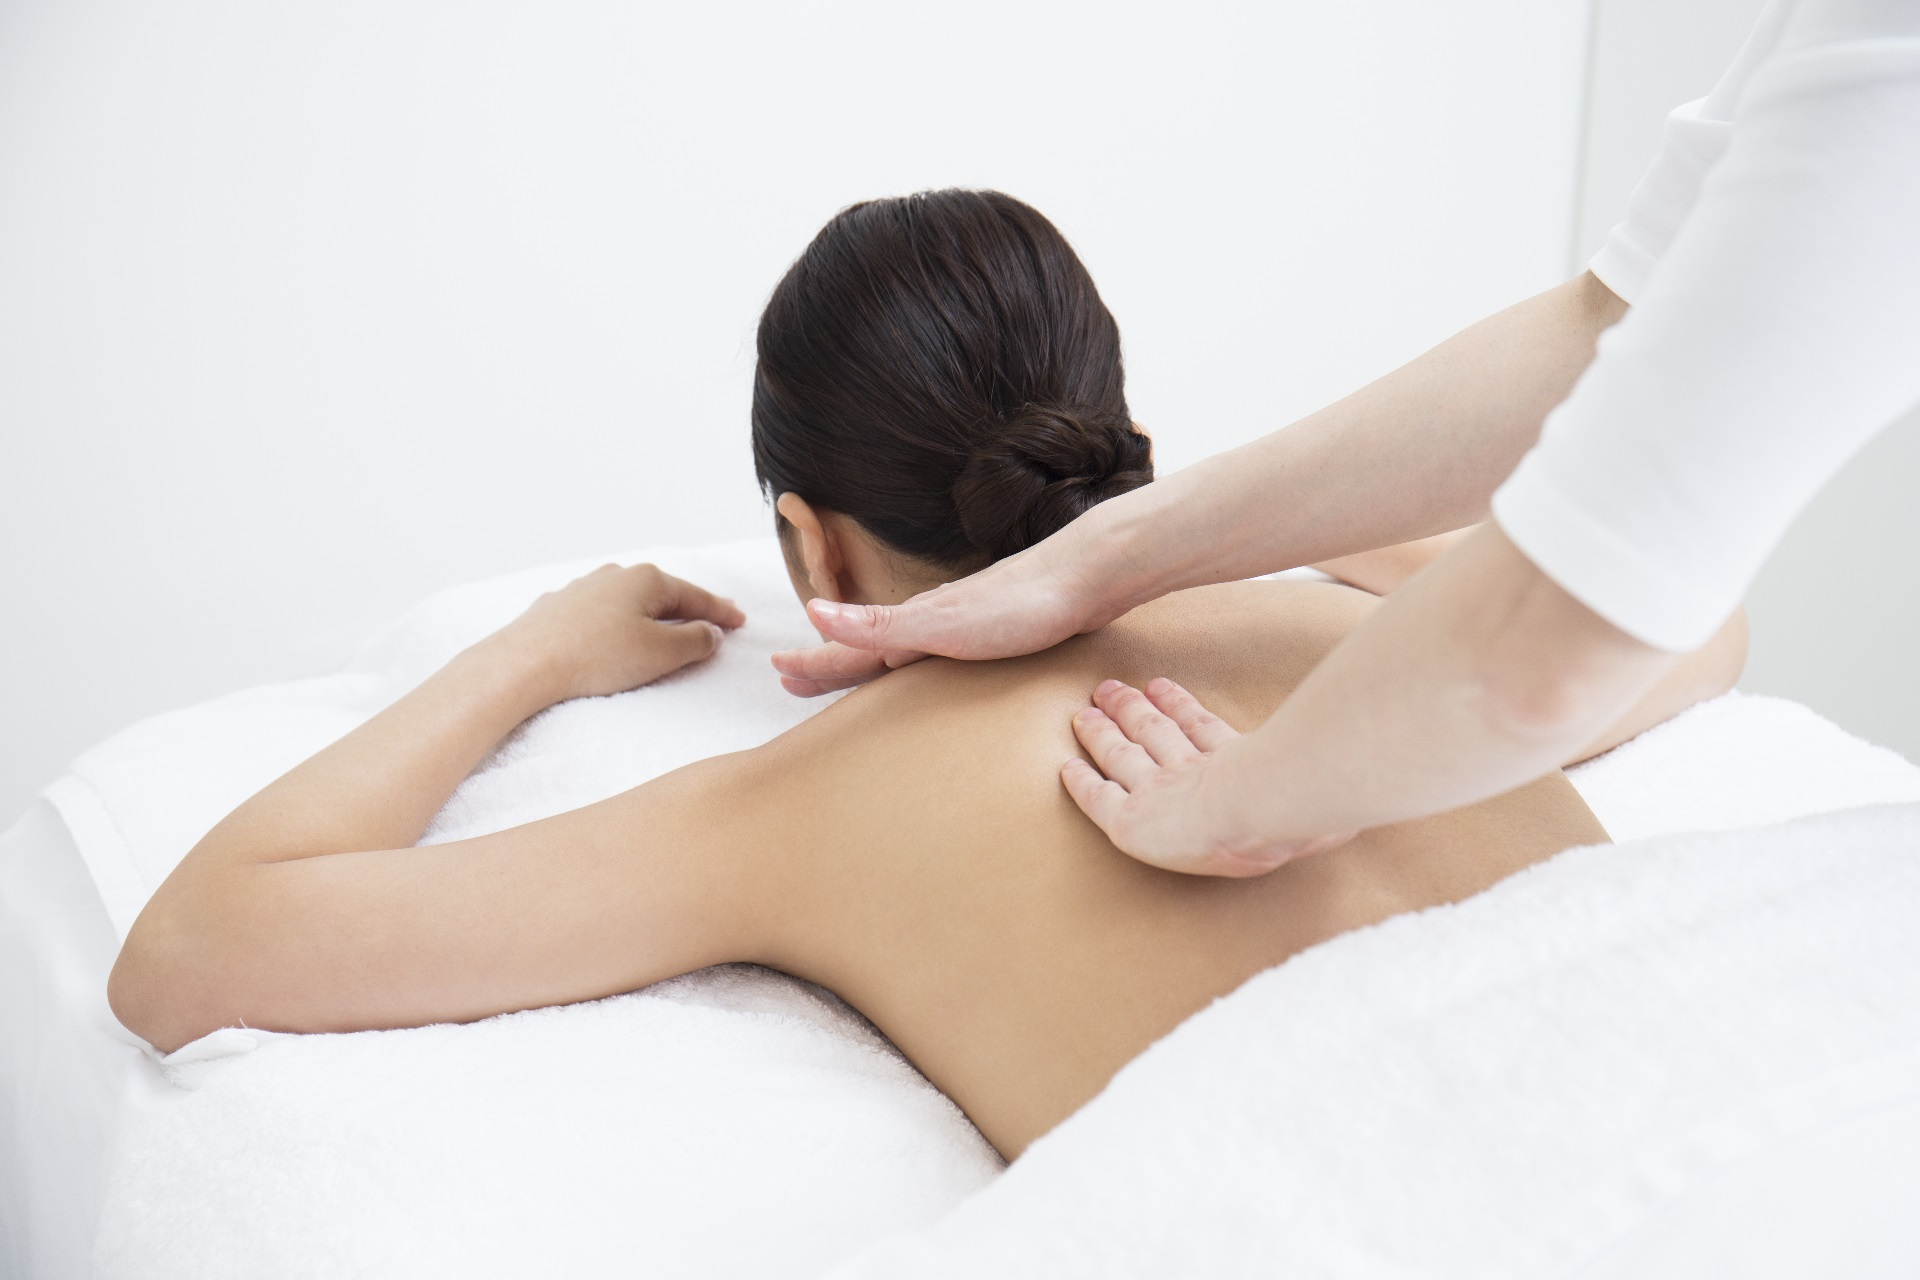 What To Expect During A Relaxation Massage